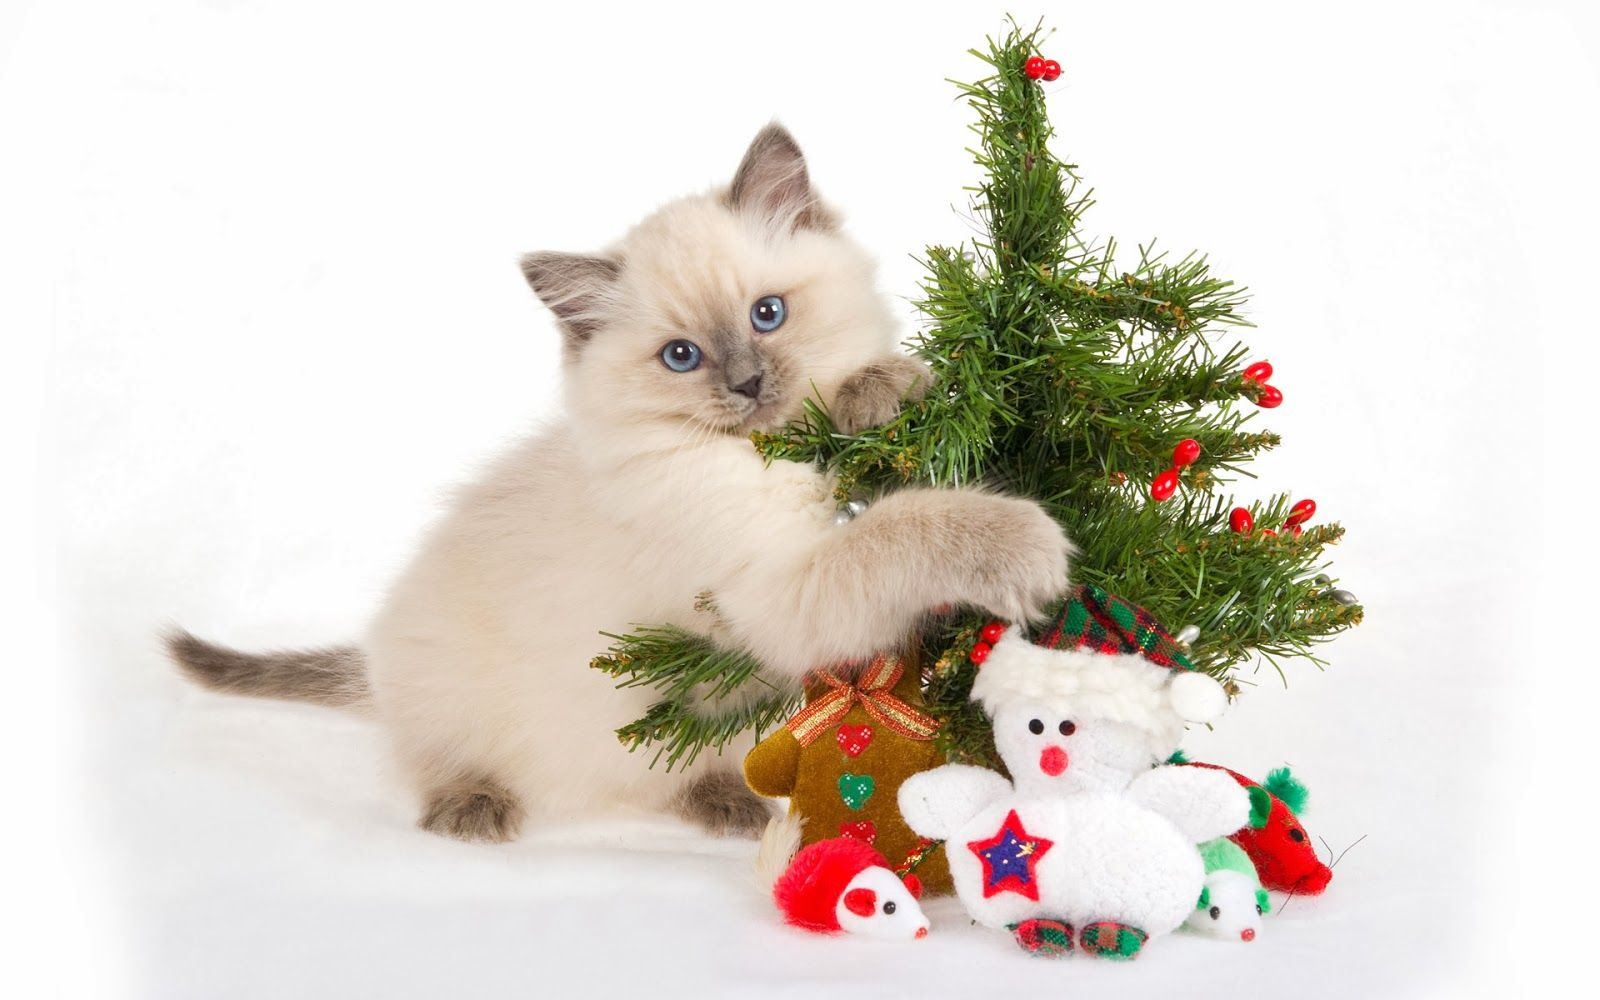 Christmas Gifts For Cat Lovers Happy Christmas Wallpapers Cute Christmas Backgrounds Christmas Kitten Christmas Cats